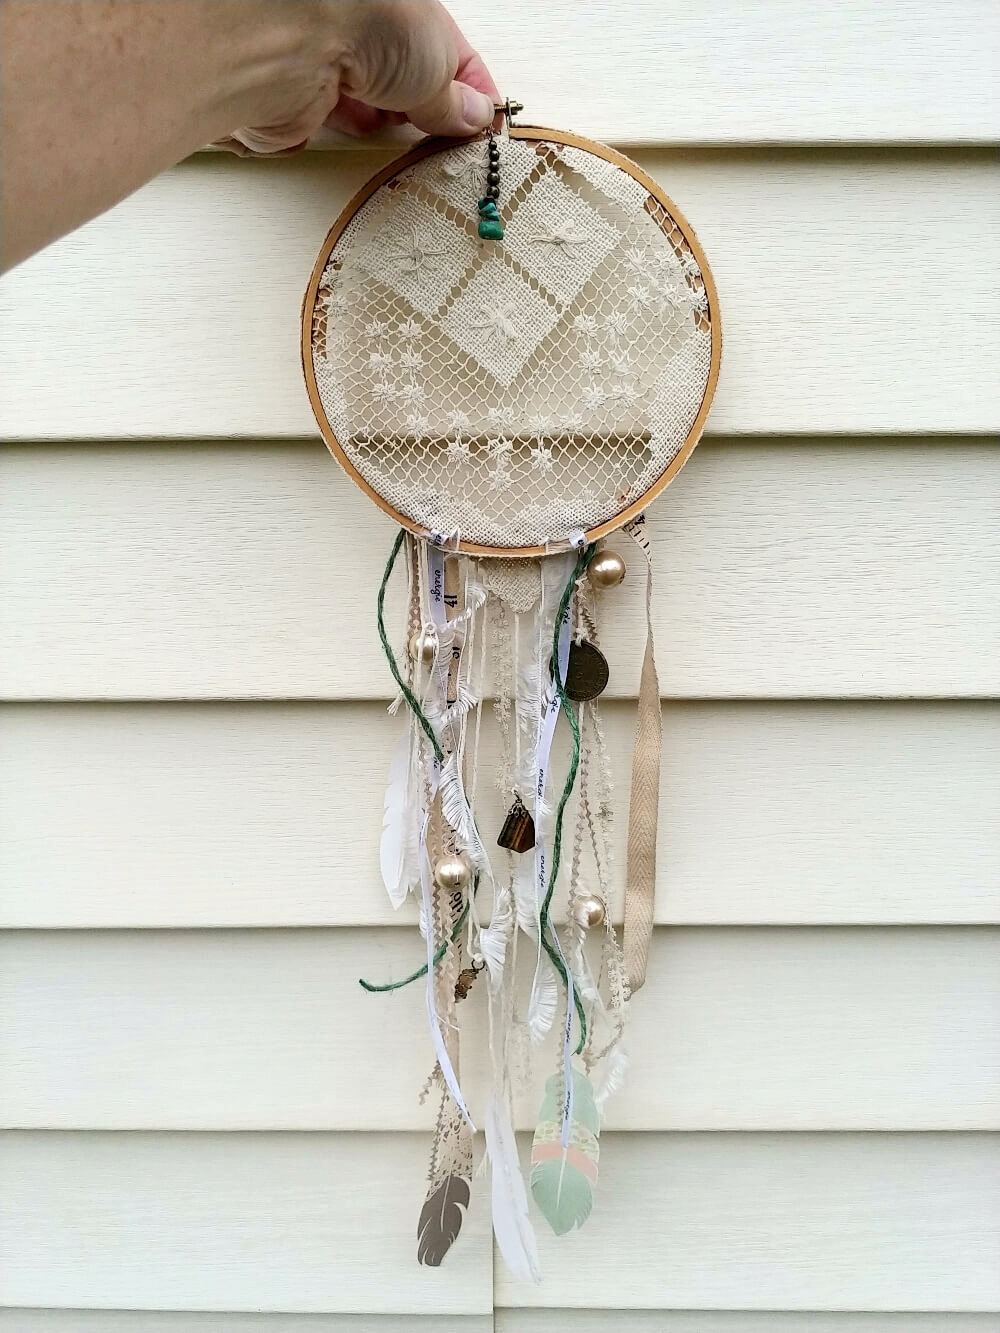 Upcycled dream catcher by Little Vintage Cottage, featured on Funky Junk Interiors